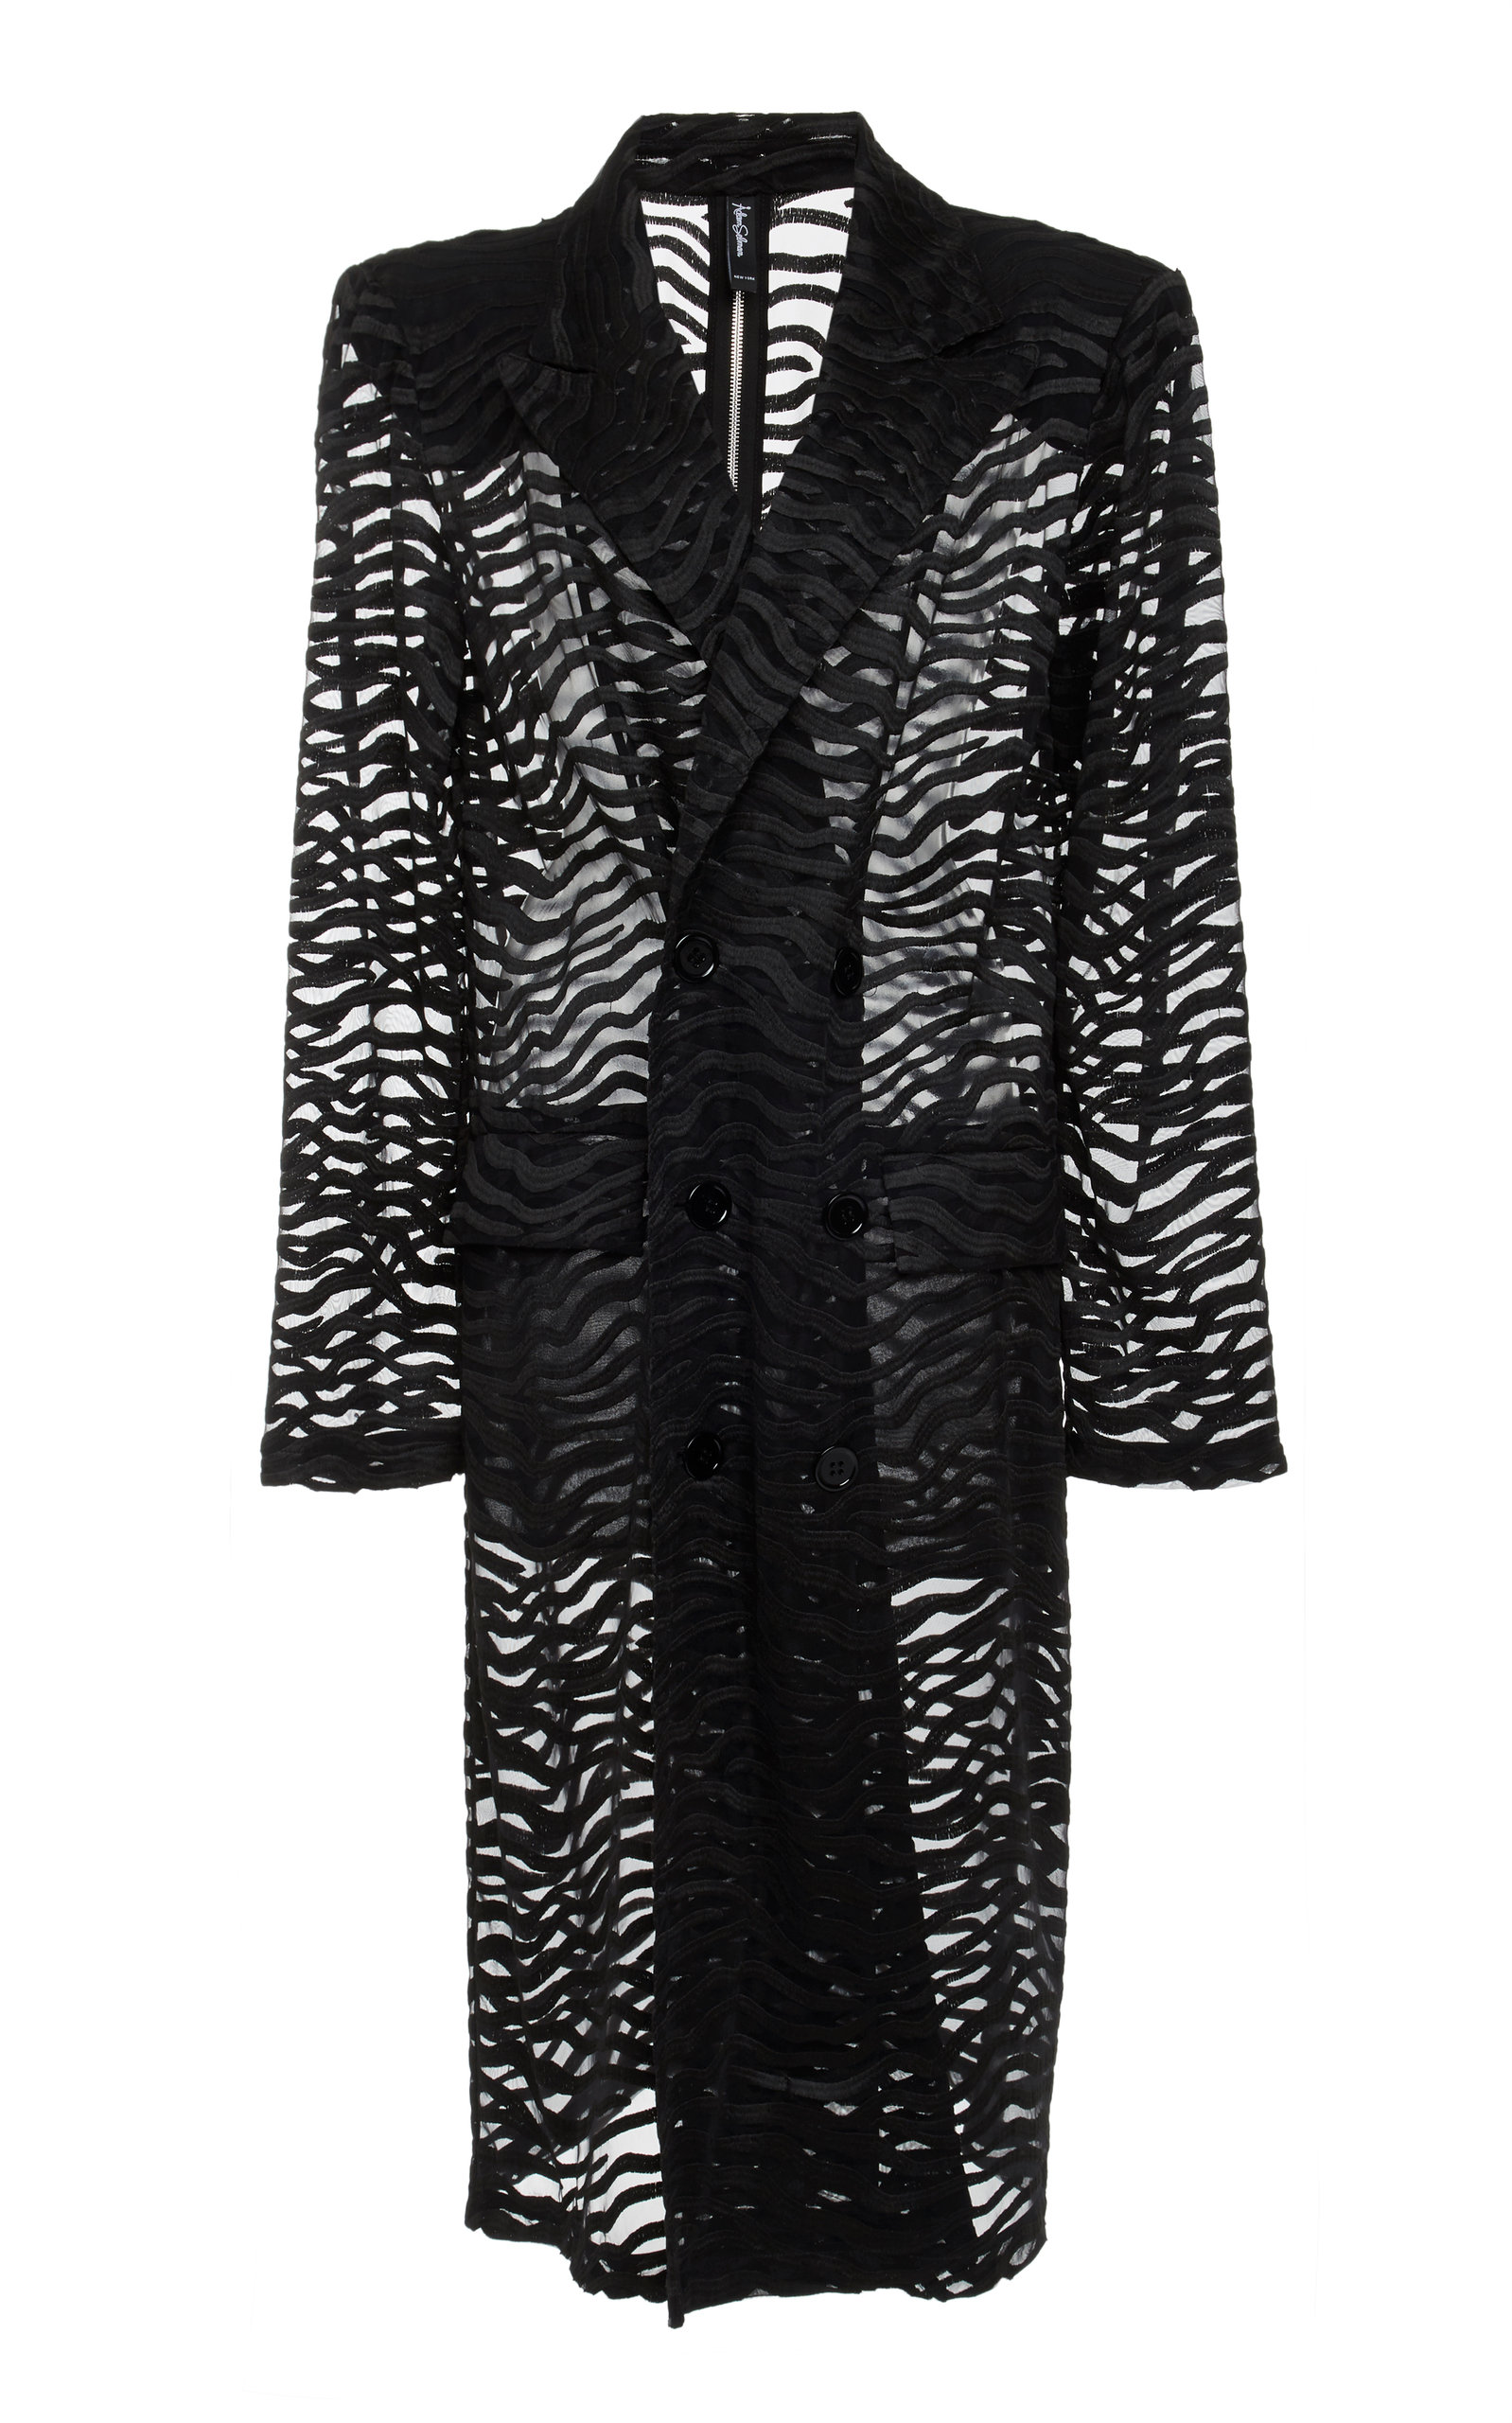 ADAM SELMAN Double Breasted Trench Coat  in Black